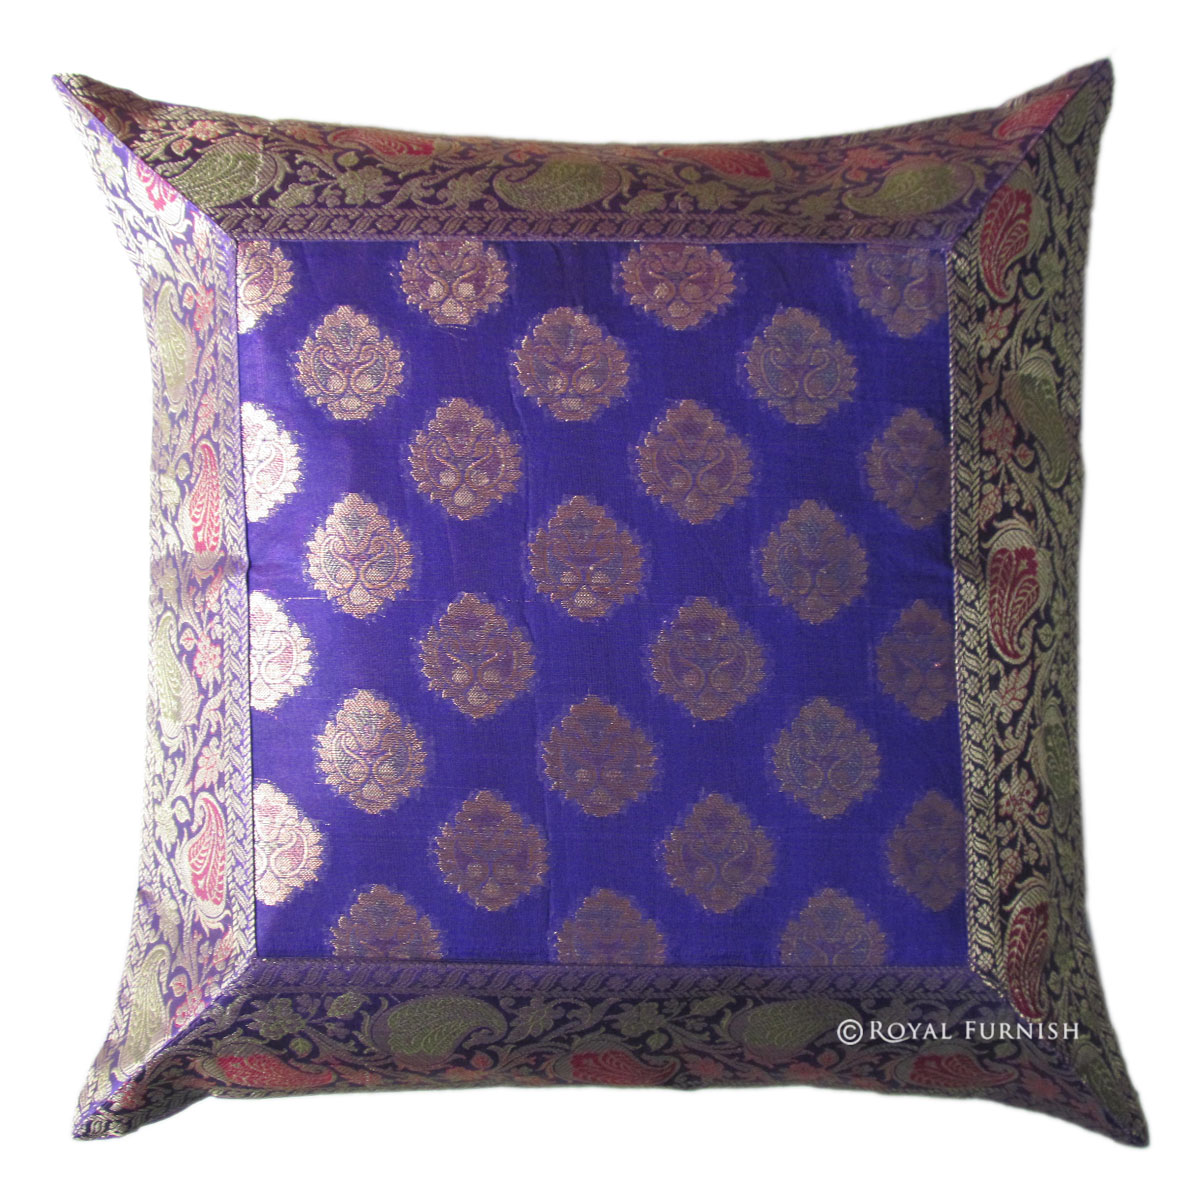 Indian Silk Brocade Floral Throw Pillow Sham For Couch